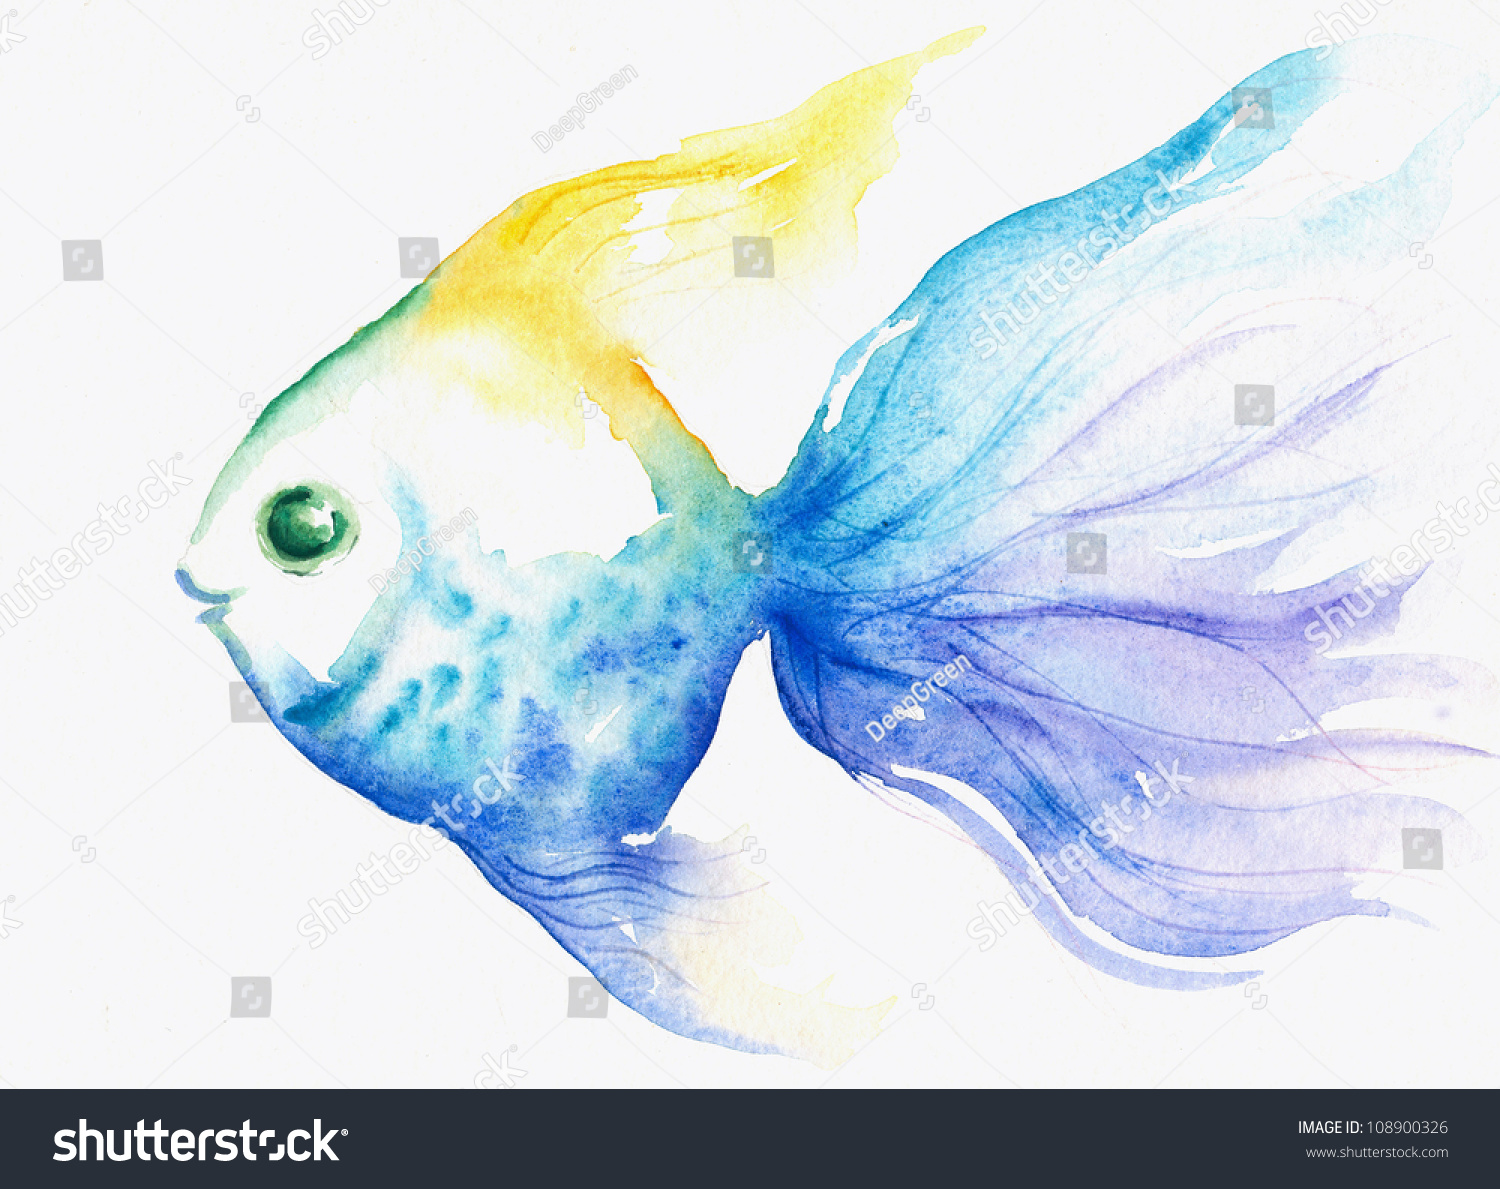 Blue fish watercolor painted stock illustration 108900326 for Fish out of water watercolor